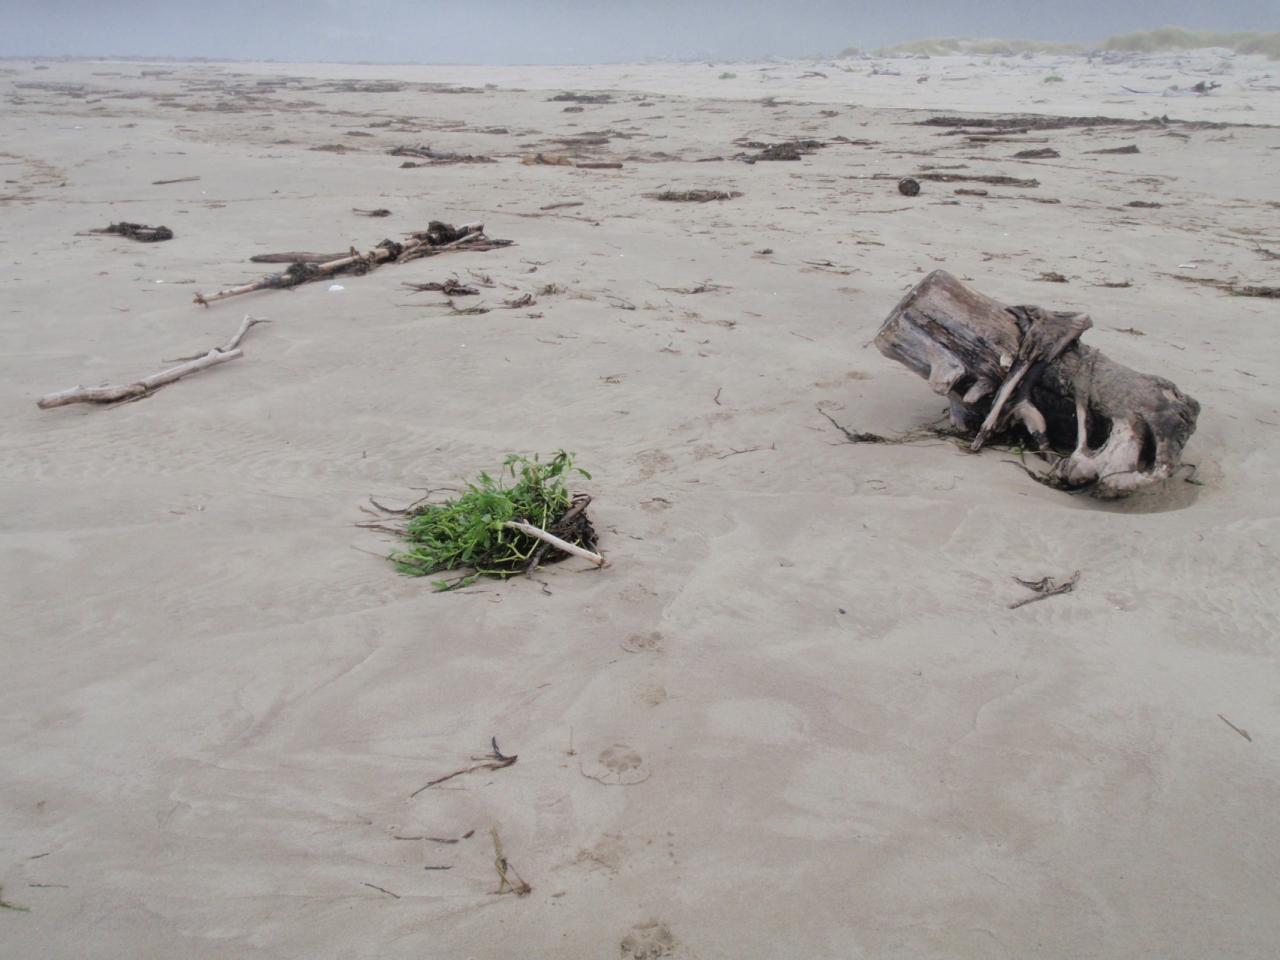 Recent high swells have pushed the tides up high on the beach.  The new summer vegetation is being inundated.